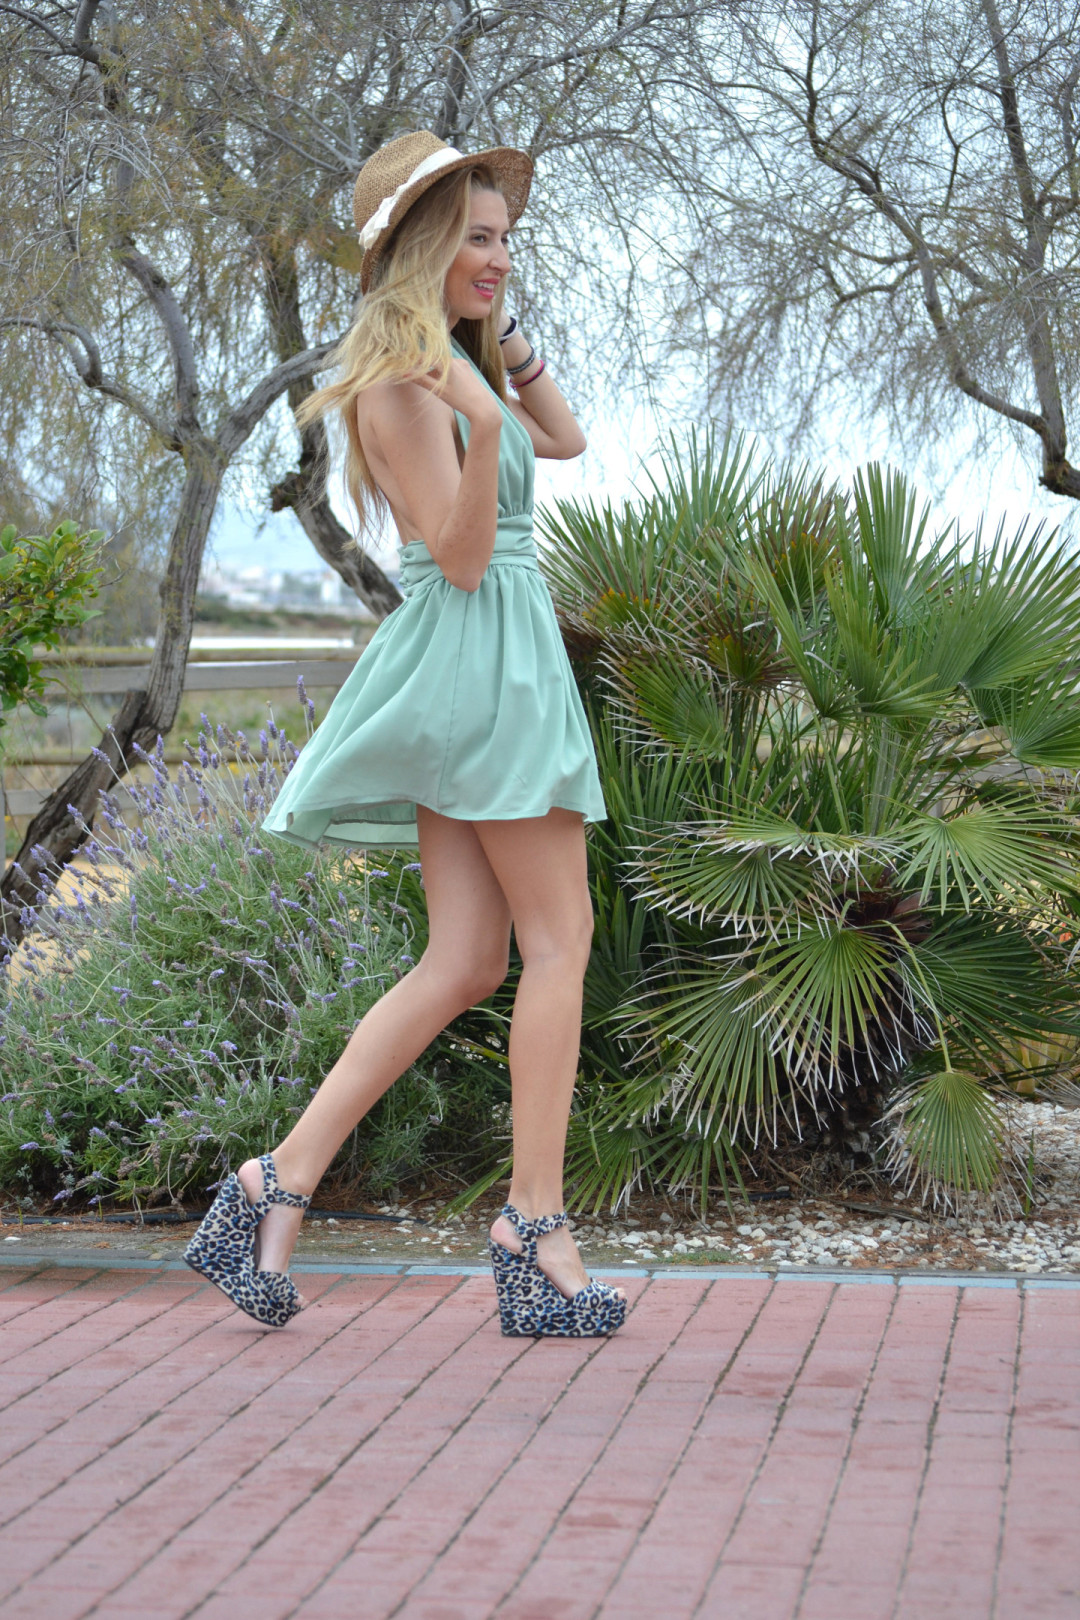 Green_Drapped_Dress_Fashion_Frenzzie_Hat_Sea_Seaside_Lara_Martin_Gilarranz_Bymyheels (7)